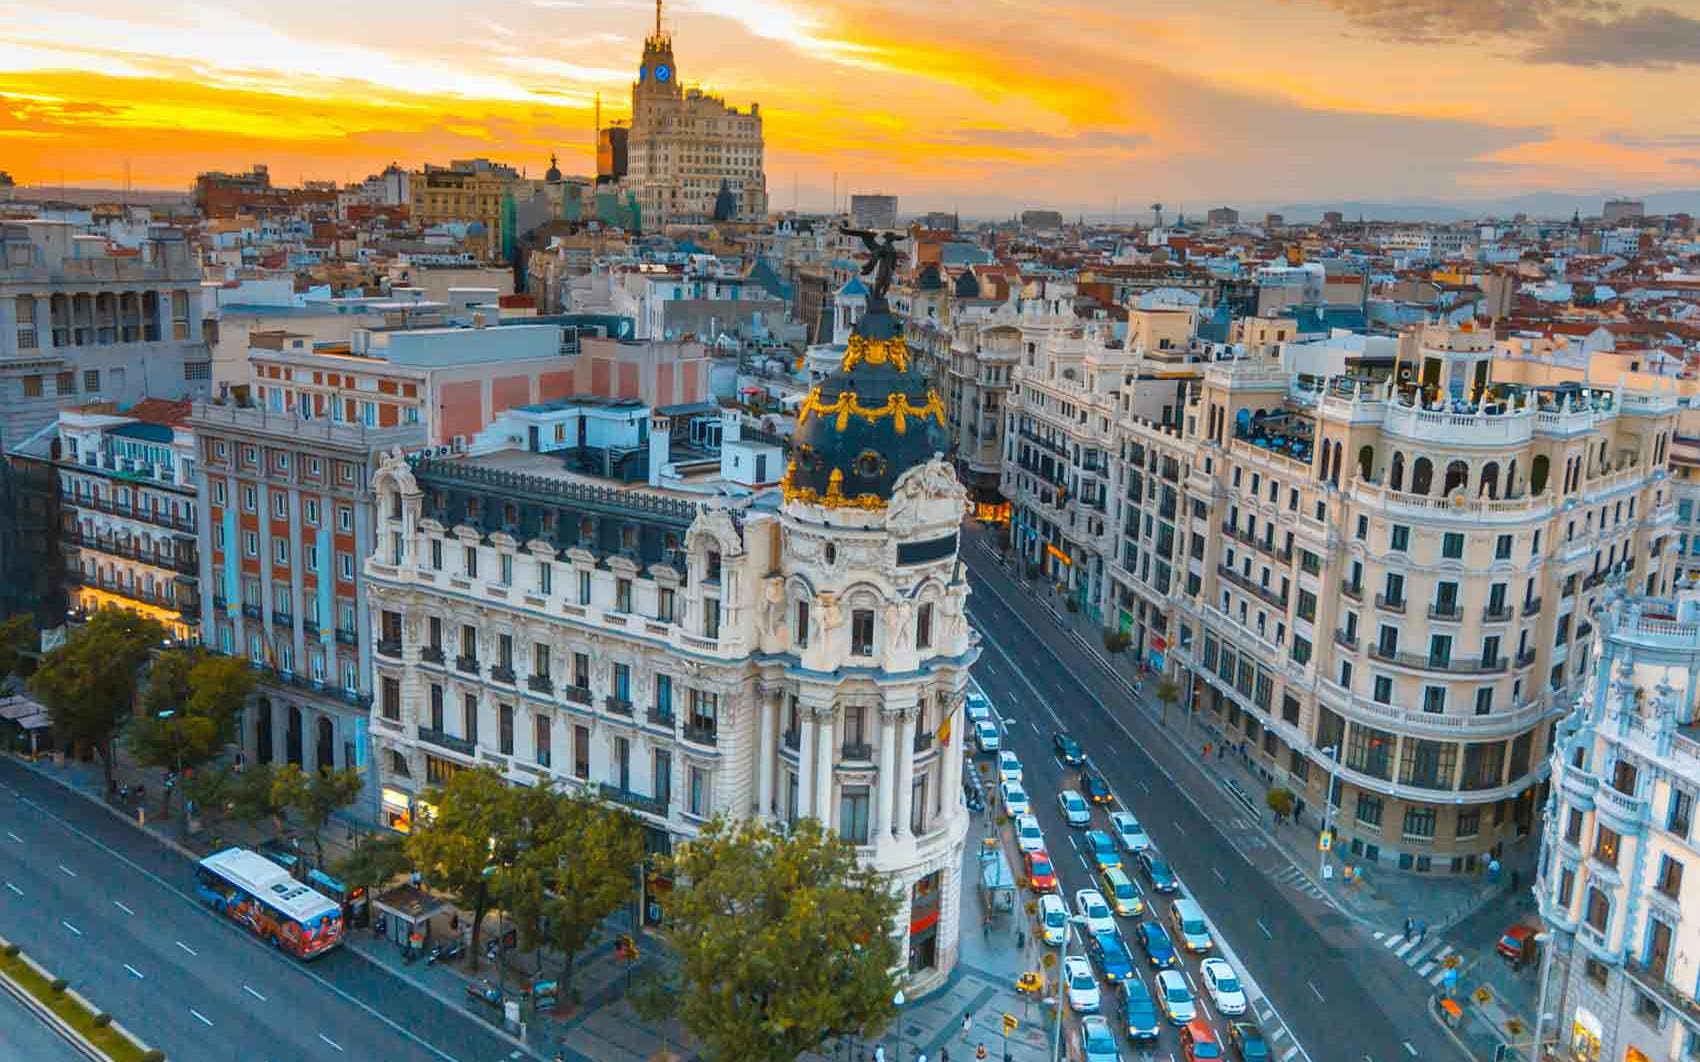 Skip the Line Prado Museum Tickets & Madrid Hop on Hop off City Tour